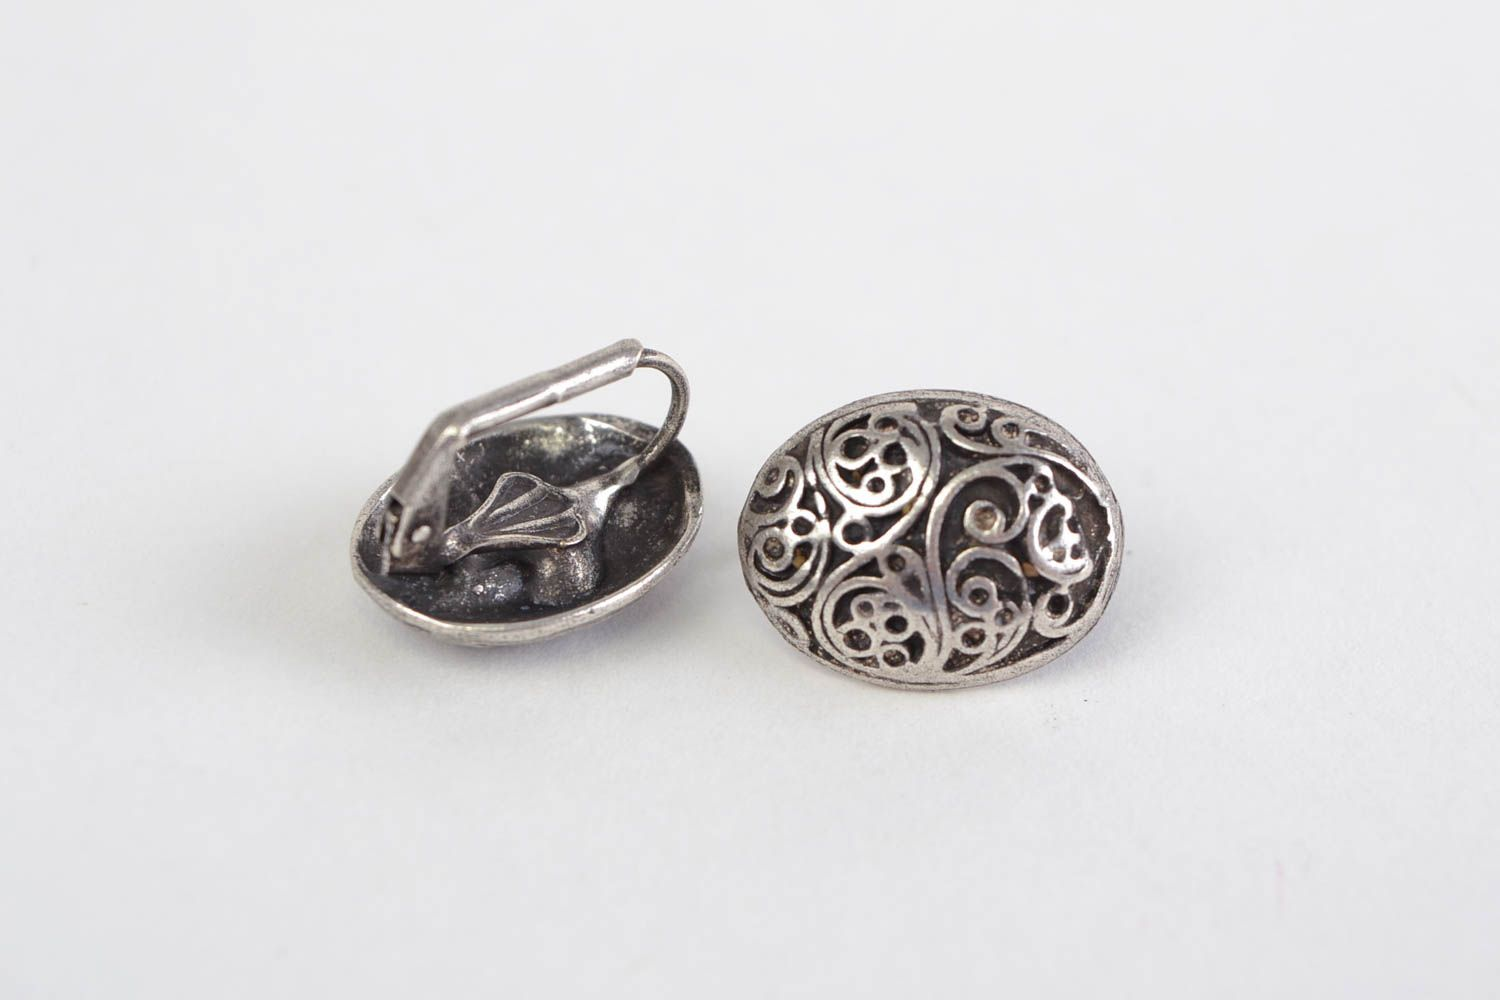 Handmade neat oval ornamented stud earrings cast of hypoallergenic metal alloy  photo 5